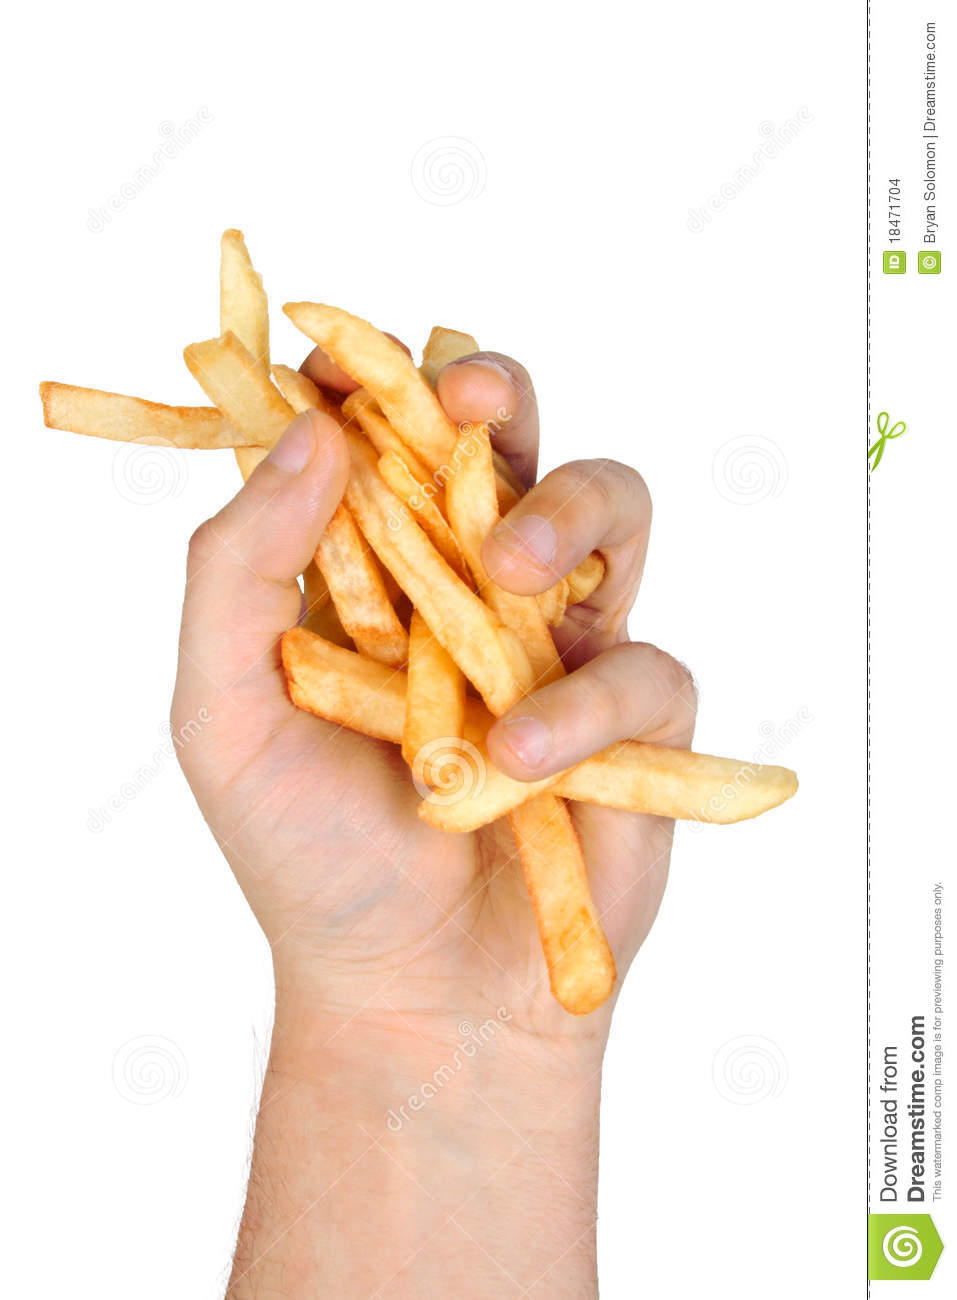 how to say a handful in french